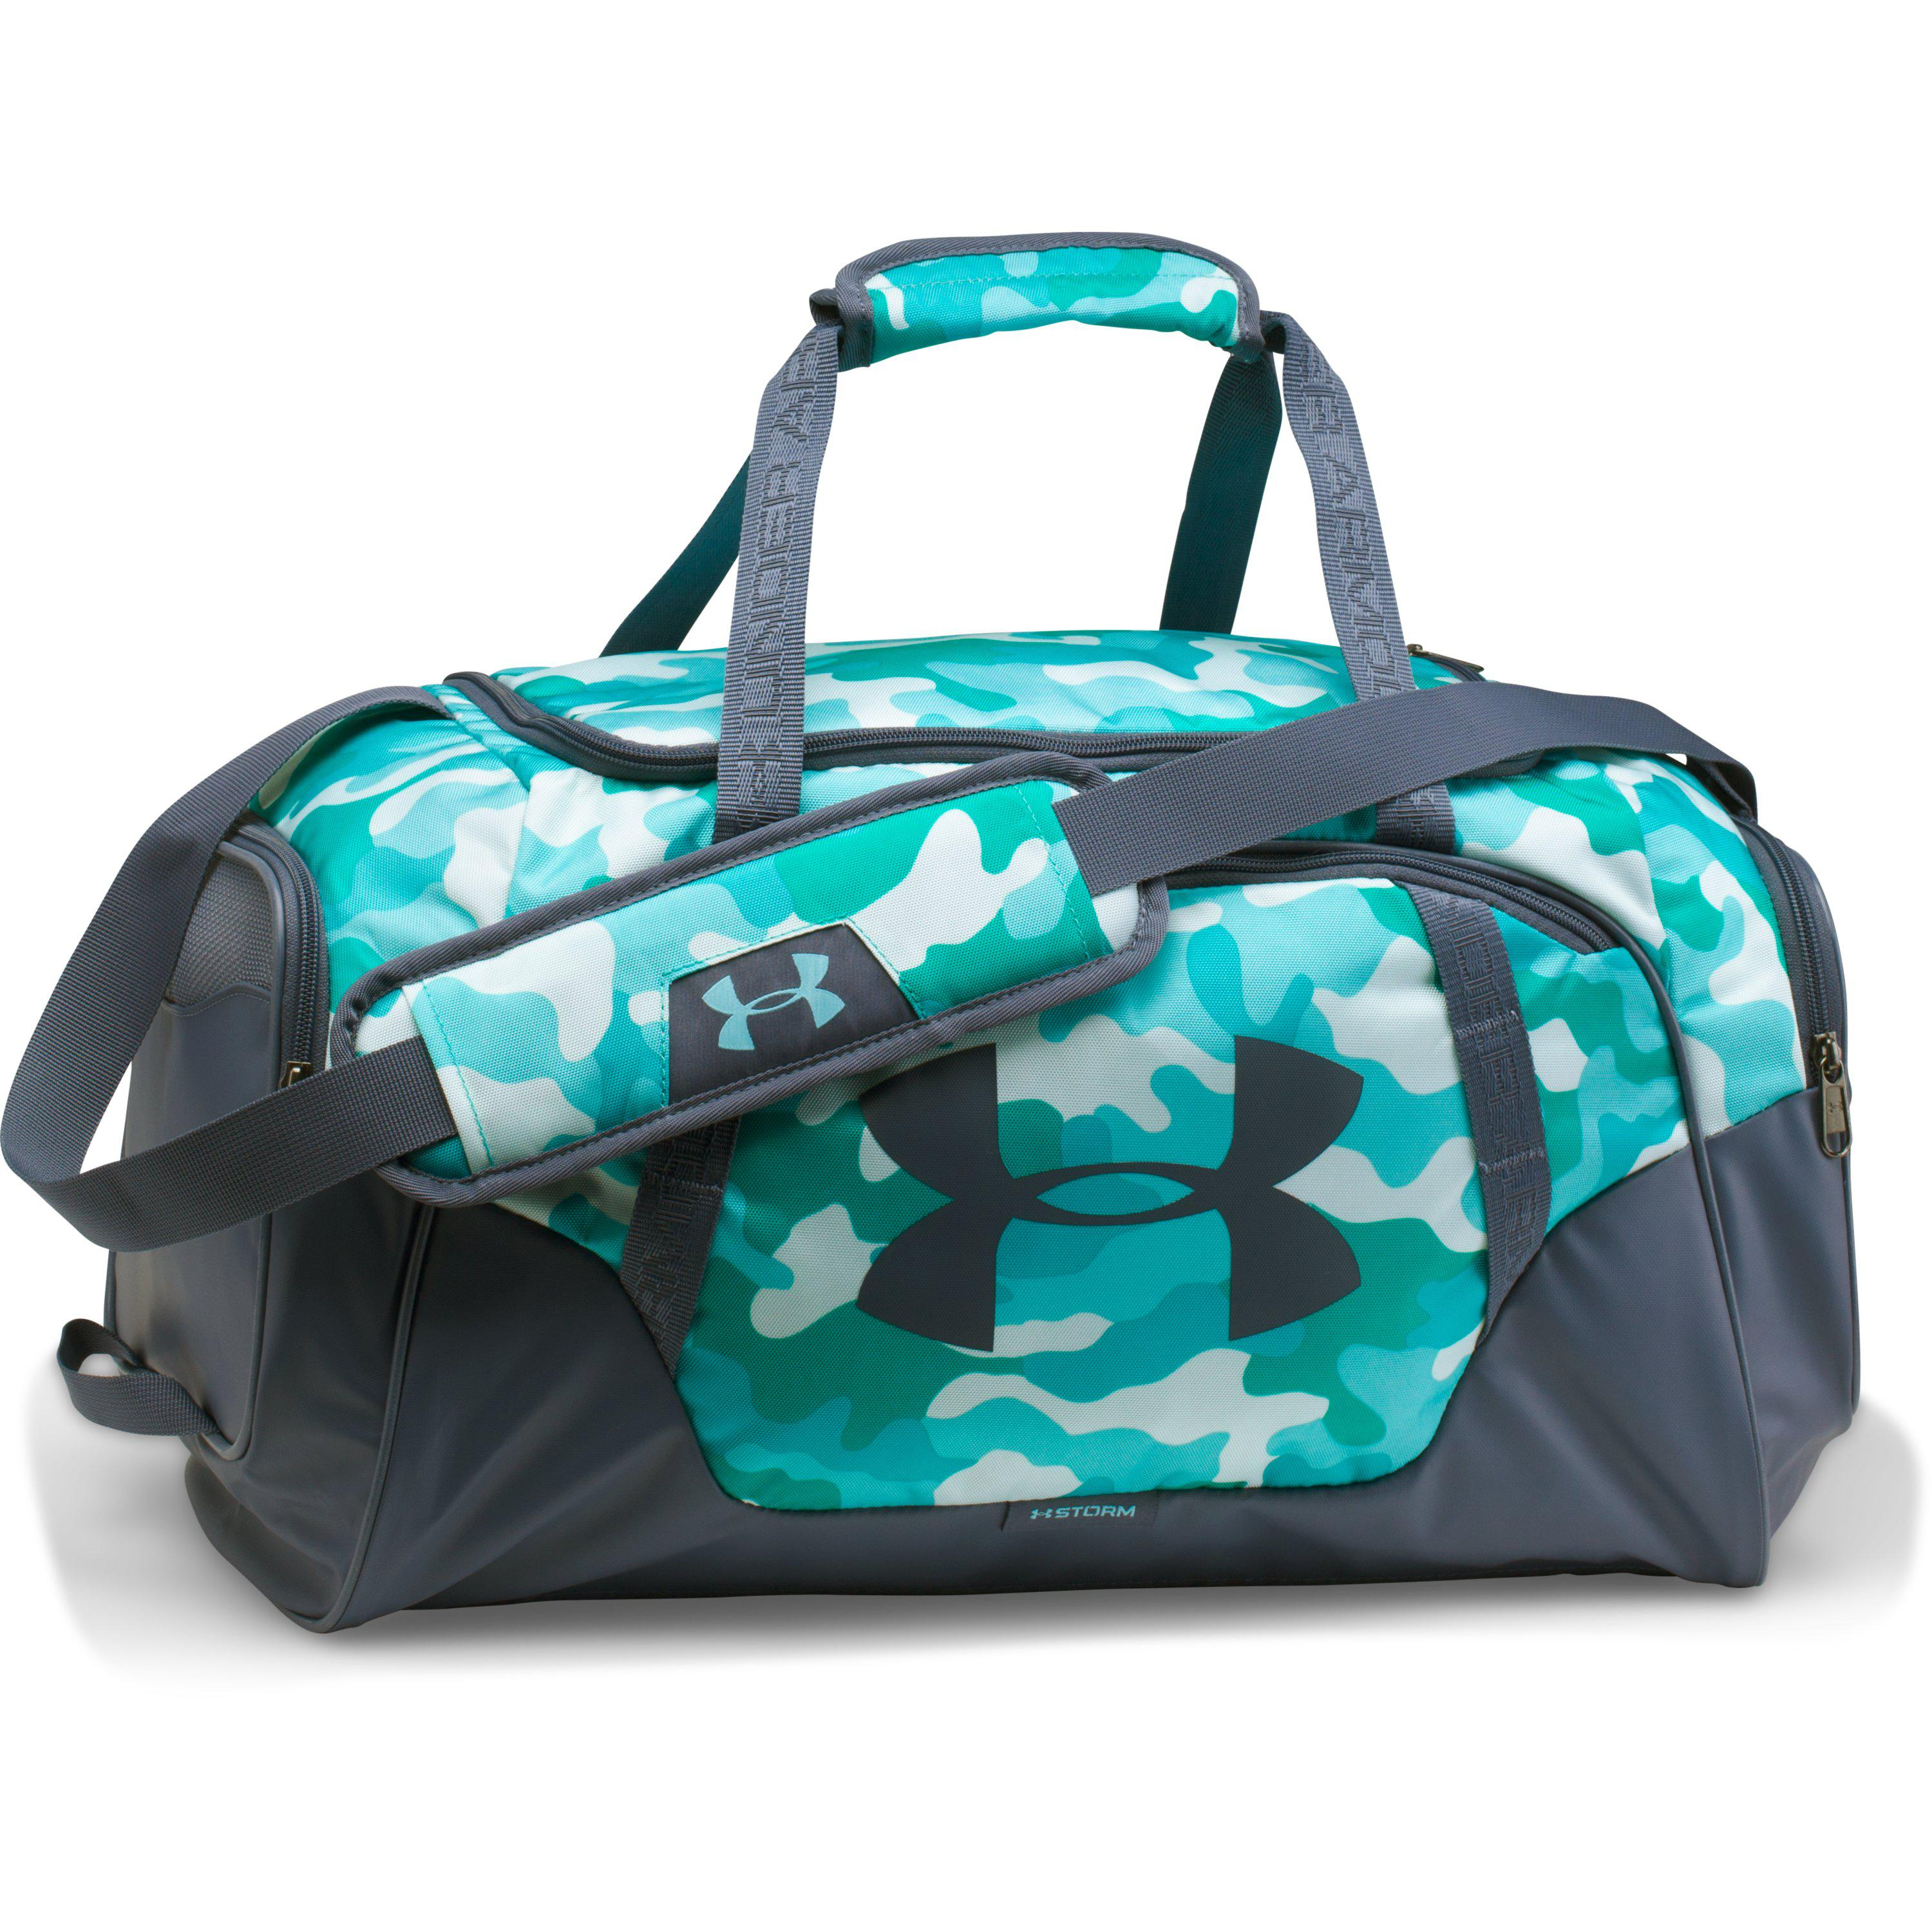 a5ac565403 Lyst - Under Armour Undeniable 3.0 Medium Duffle Bag in Blue for Men